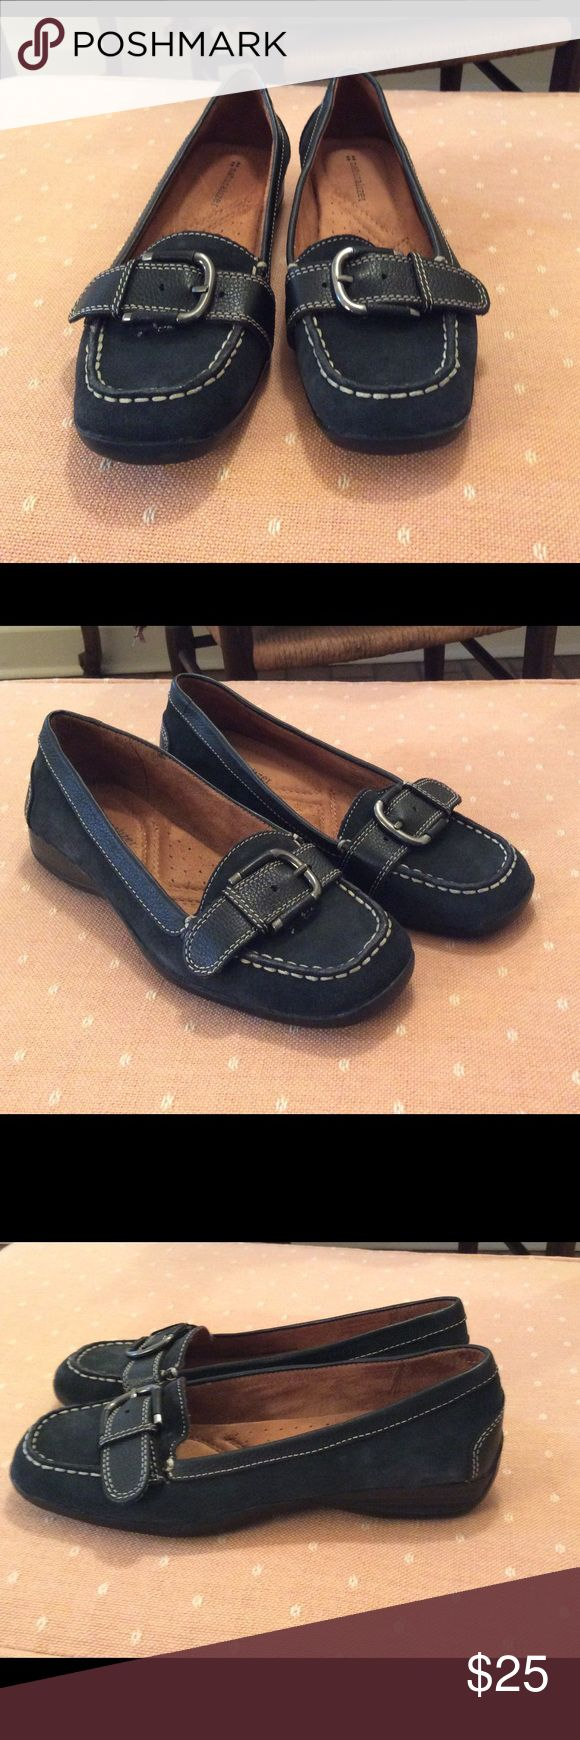 Black naturalizer shoes Brand new never worn black suede naturalizer shoes.  Excellent condition!  Black suede with a cute stylist buckle across the front. Naturalizer Shoes Flats & Loafers